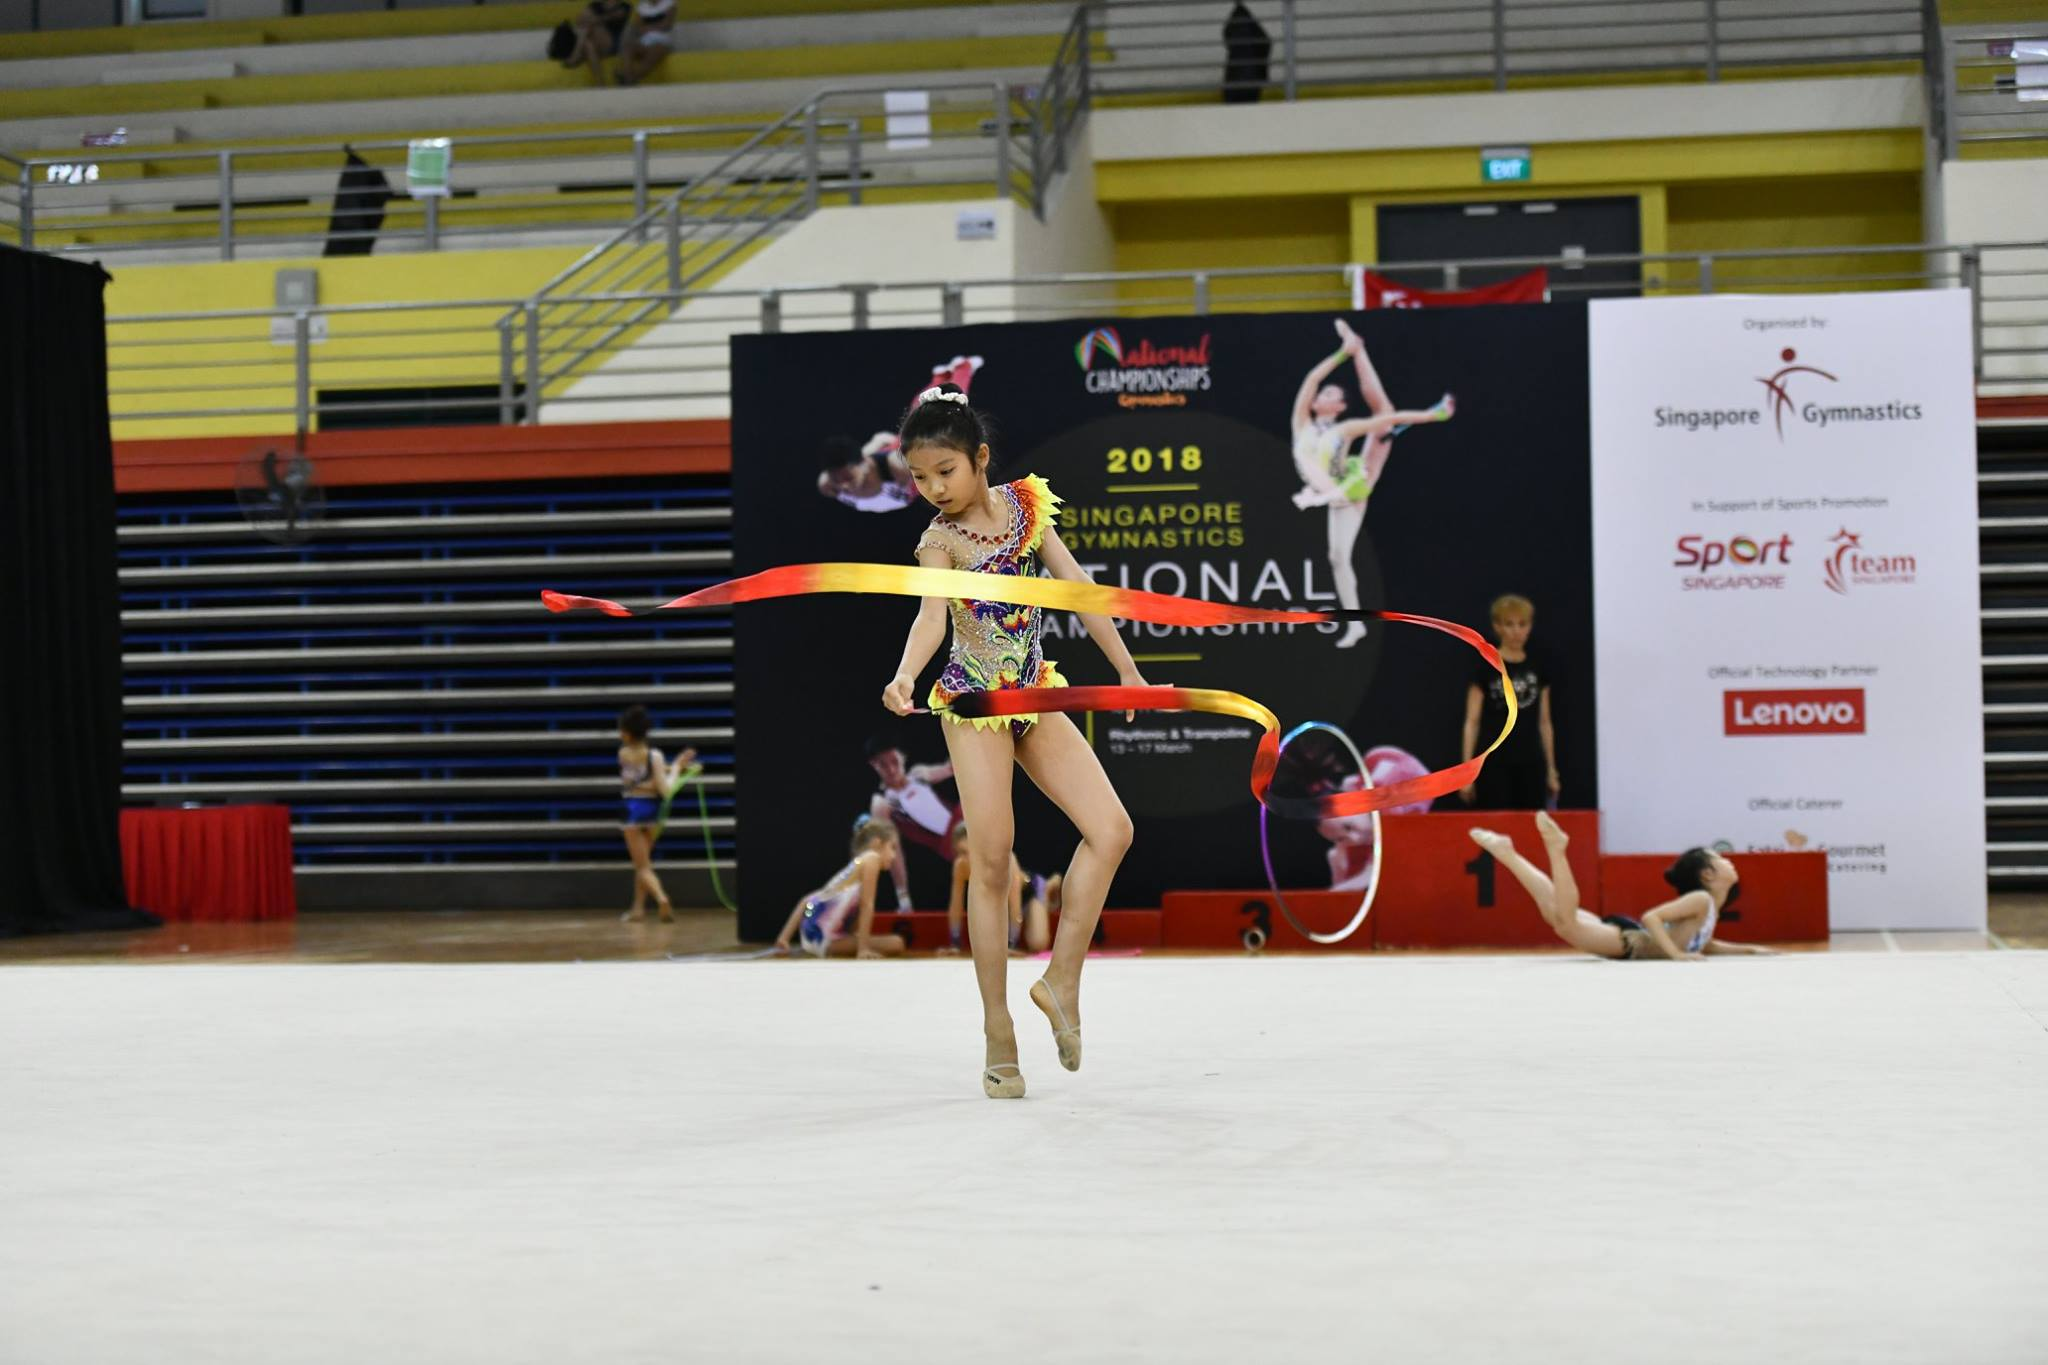 Podium Training For 10th Singapore National Championships